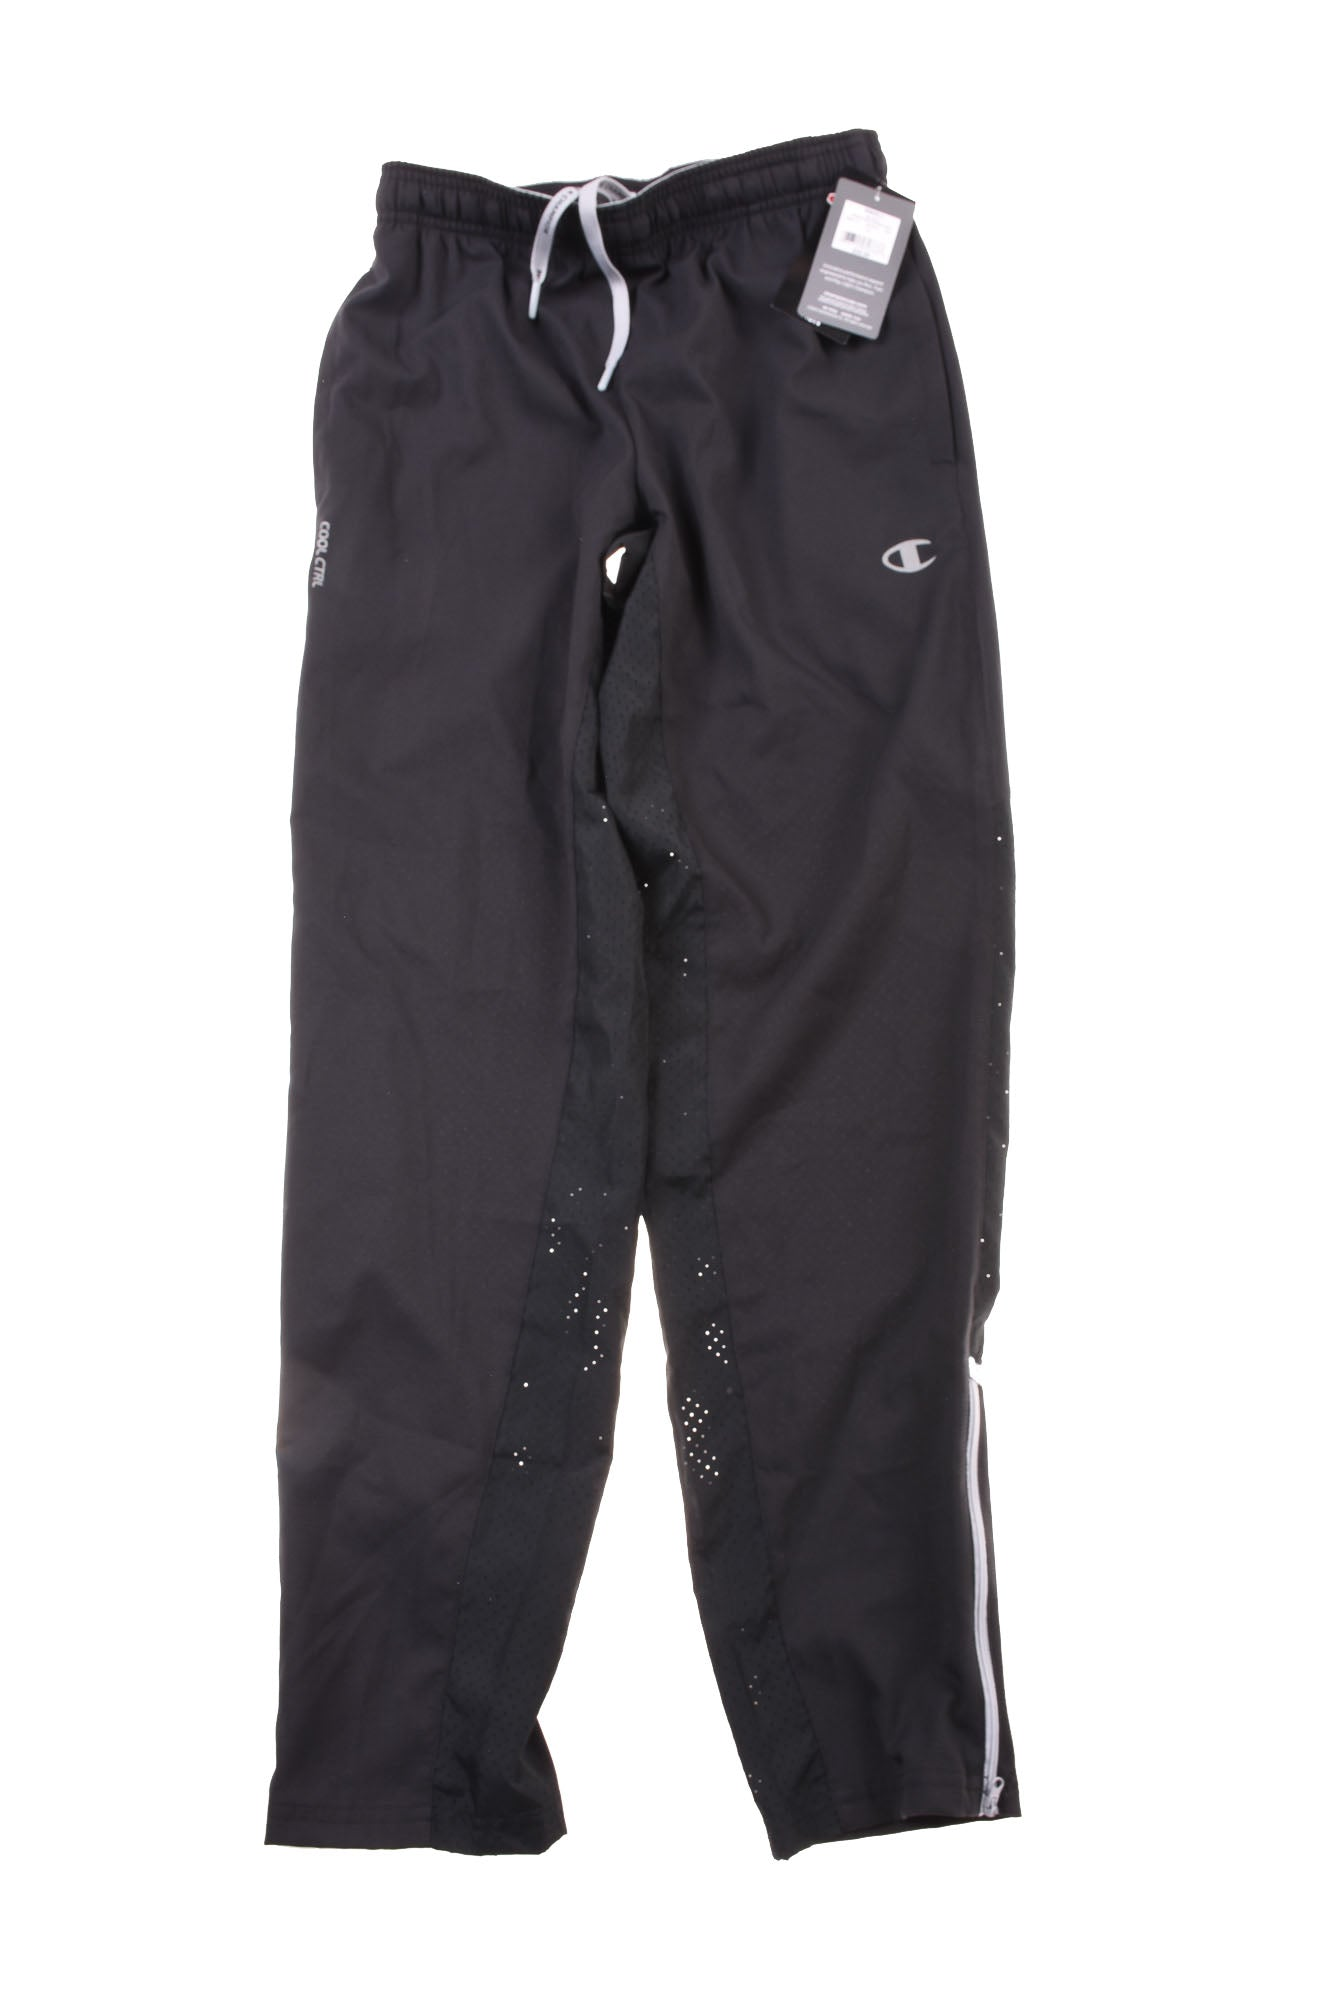 0998a25a2438 ... Joggers  NEW Champion Women s Running Pants Small Black